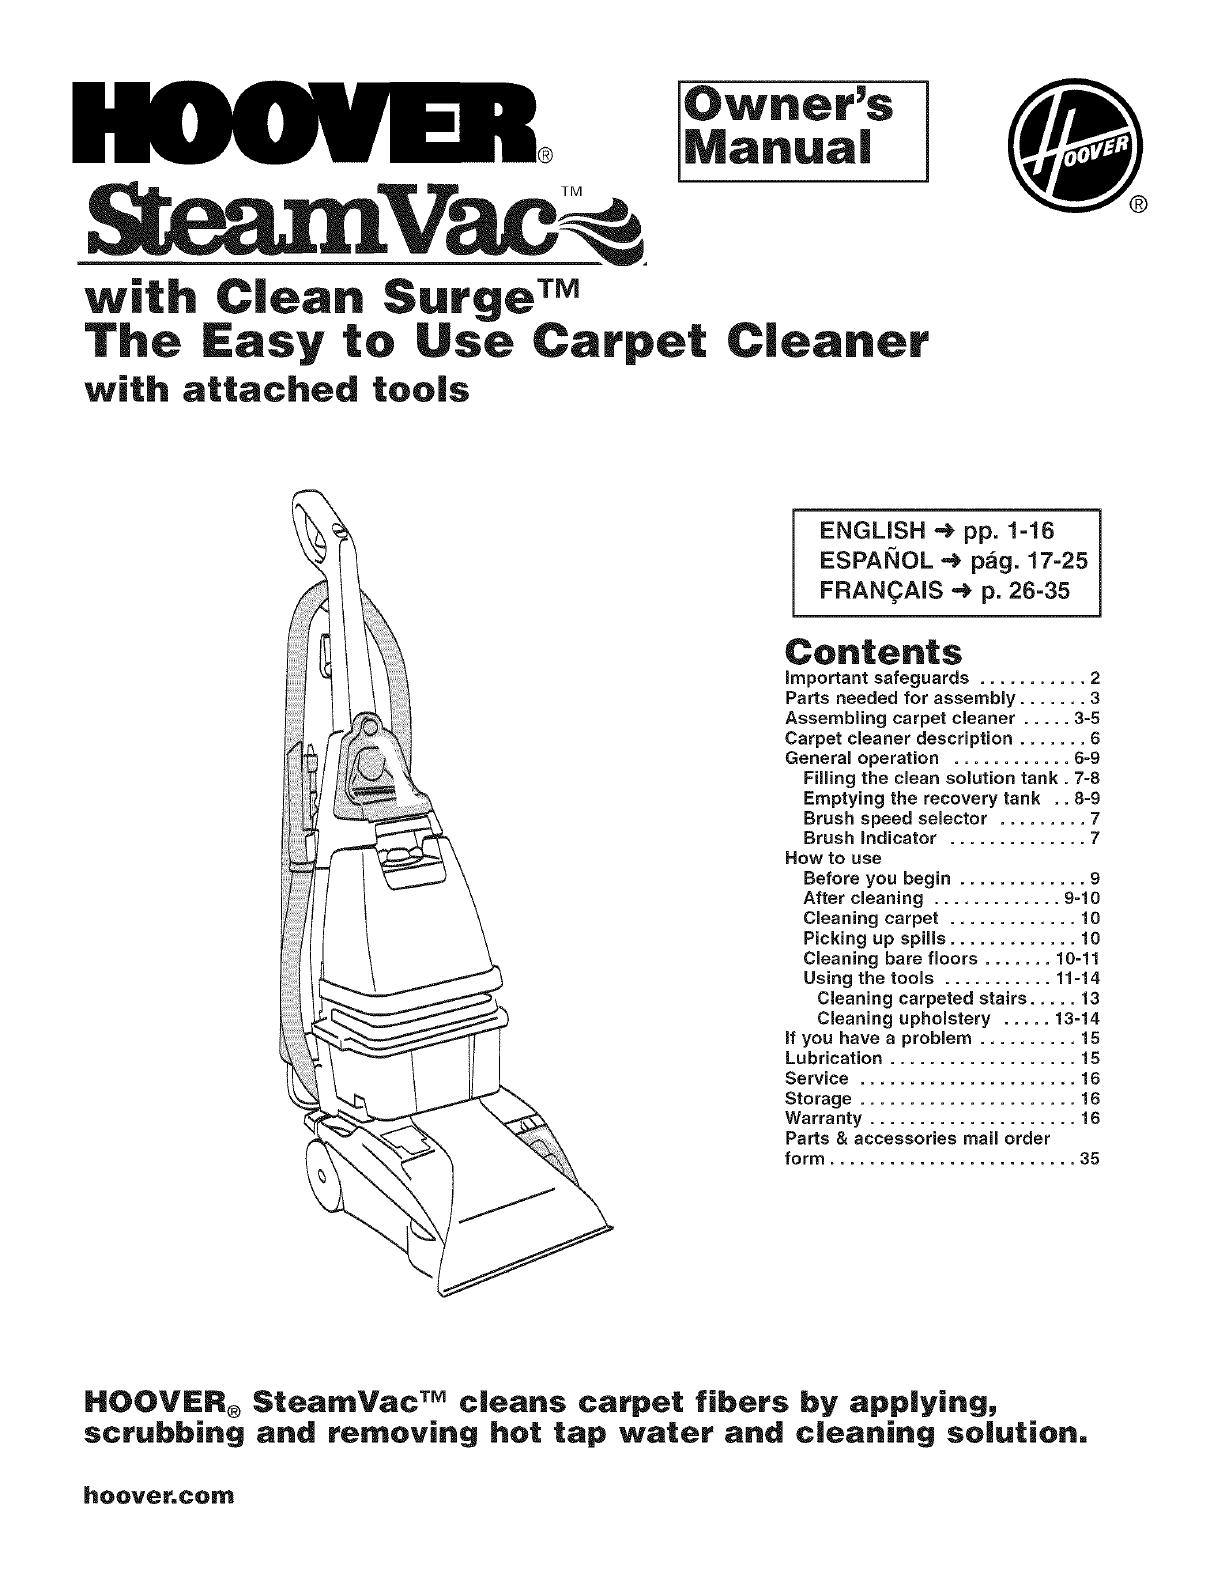 hoover f5905 900 user manual upright extractor manuals and guides rh usermanual wiki hoover steamvac manuals manual hoover steamvac manual f5912-900